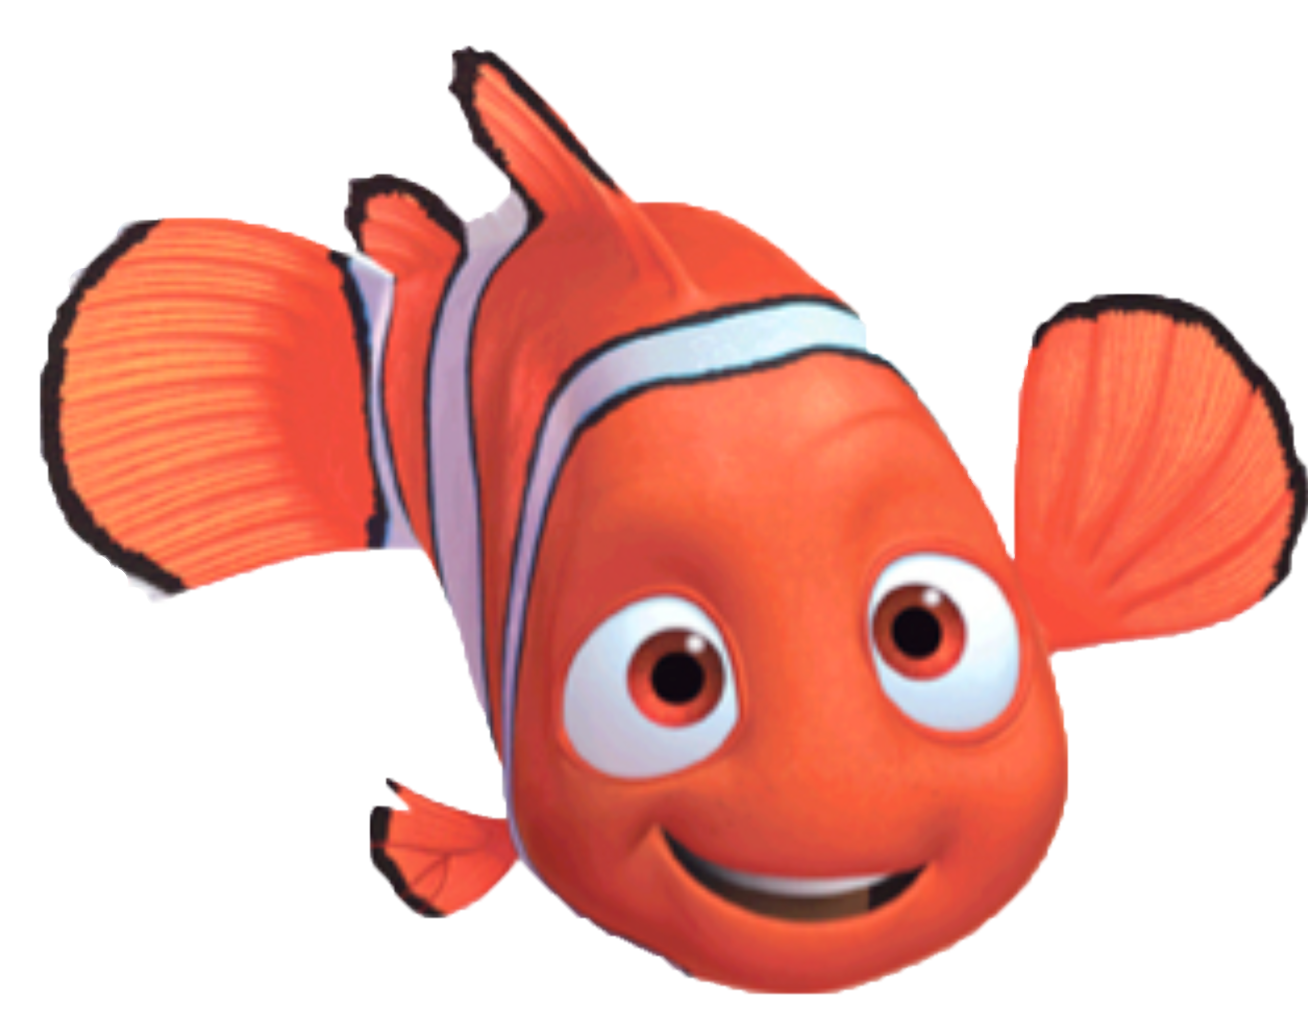 Finding dory coloring pages and coloring on pinterest finding nemo - Nemo Fish Clipart Clipart Suggest